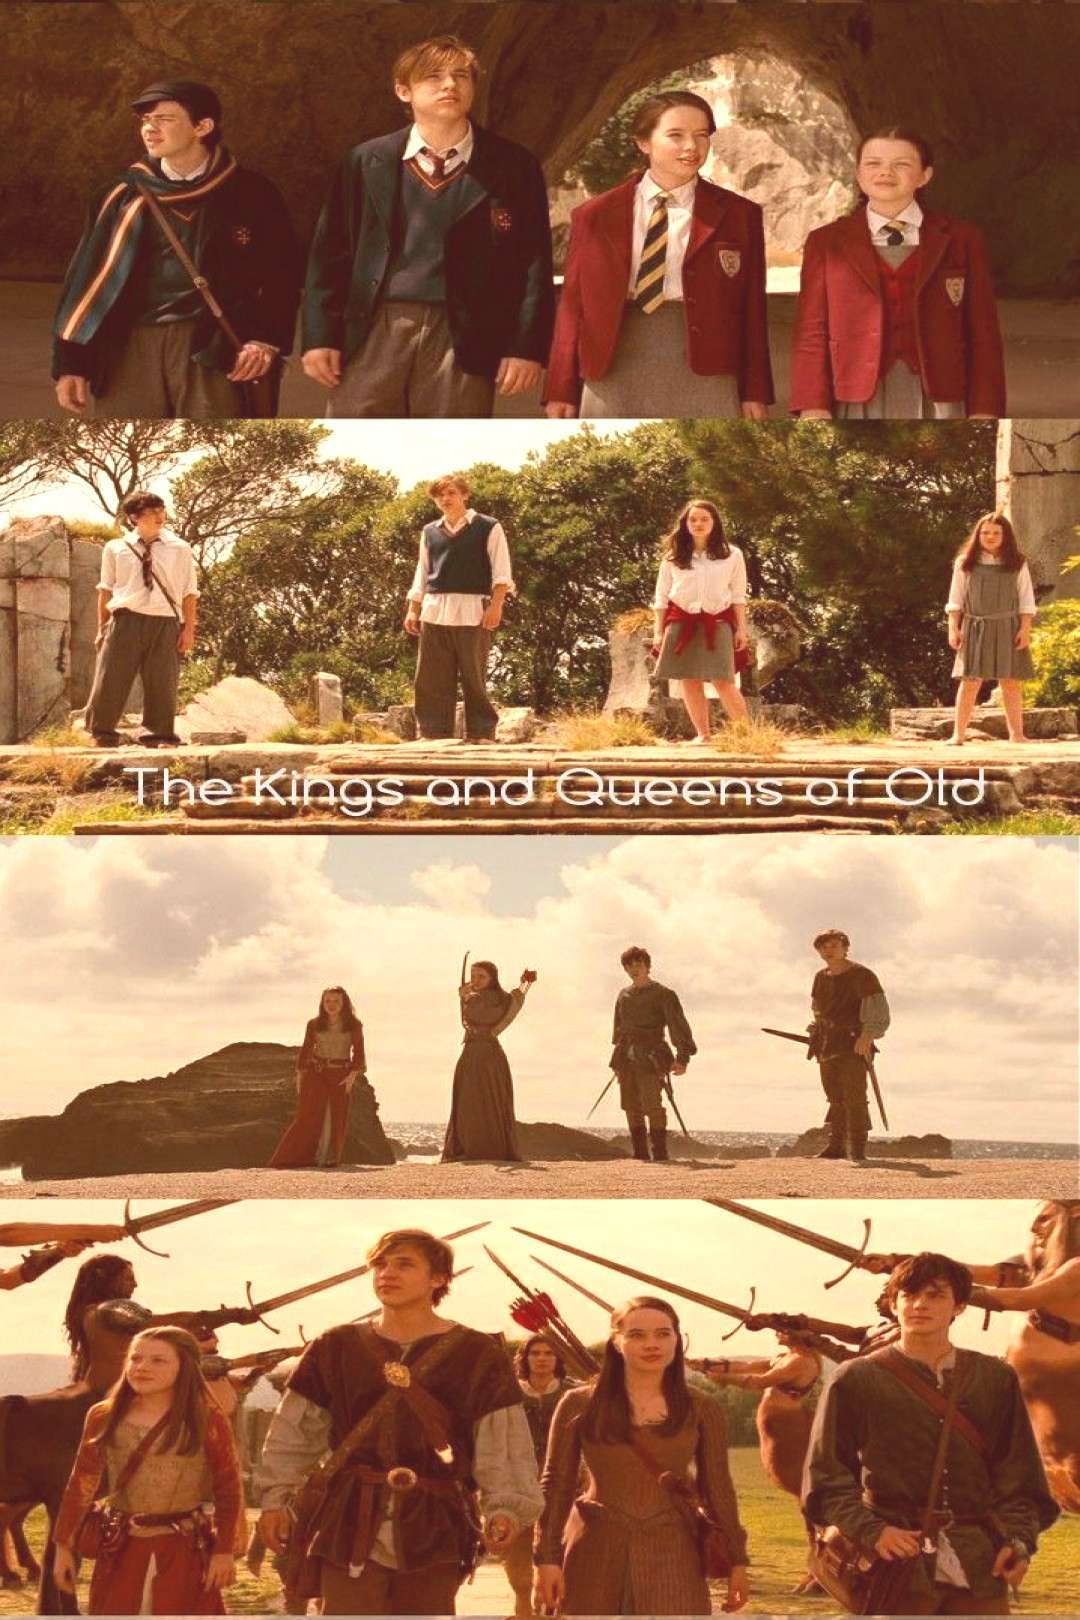 The Pevensie || Lucy, Susan, Edmund and Peter Pevensie || The Kings and Queens of Old || The Kings